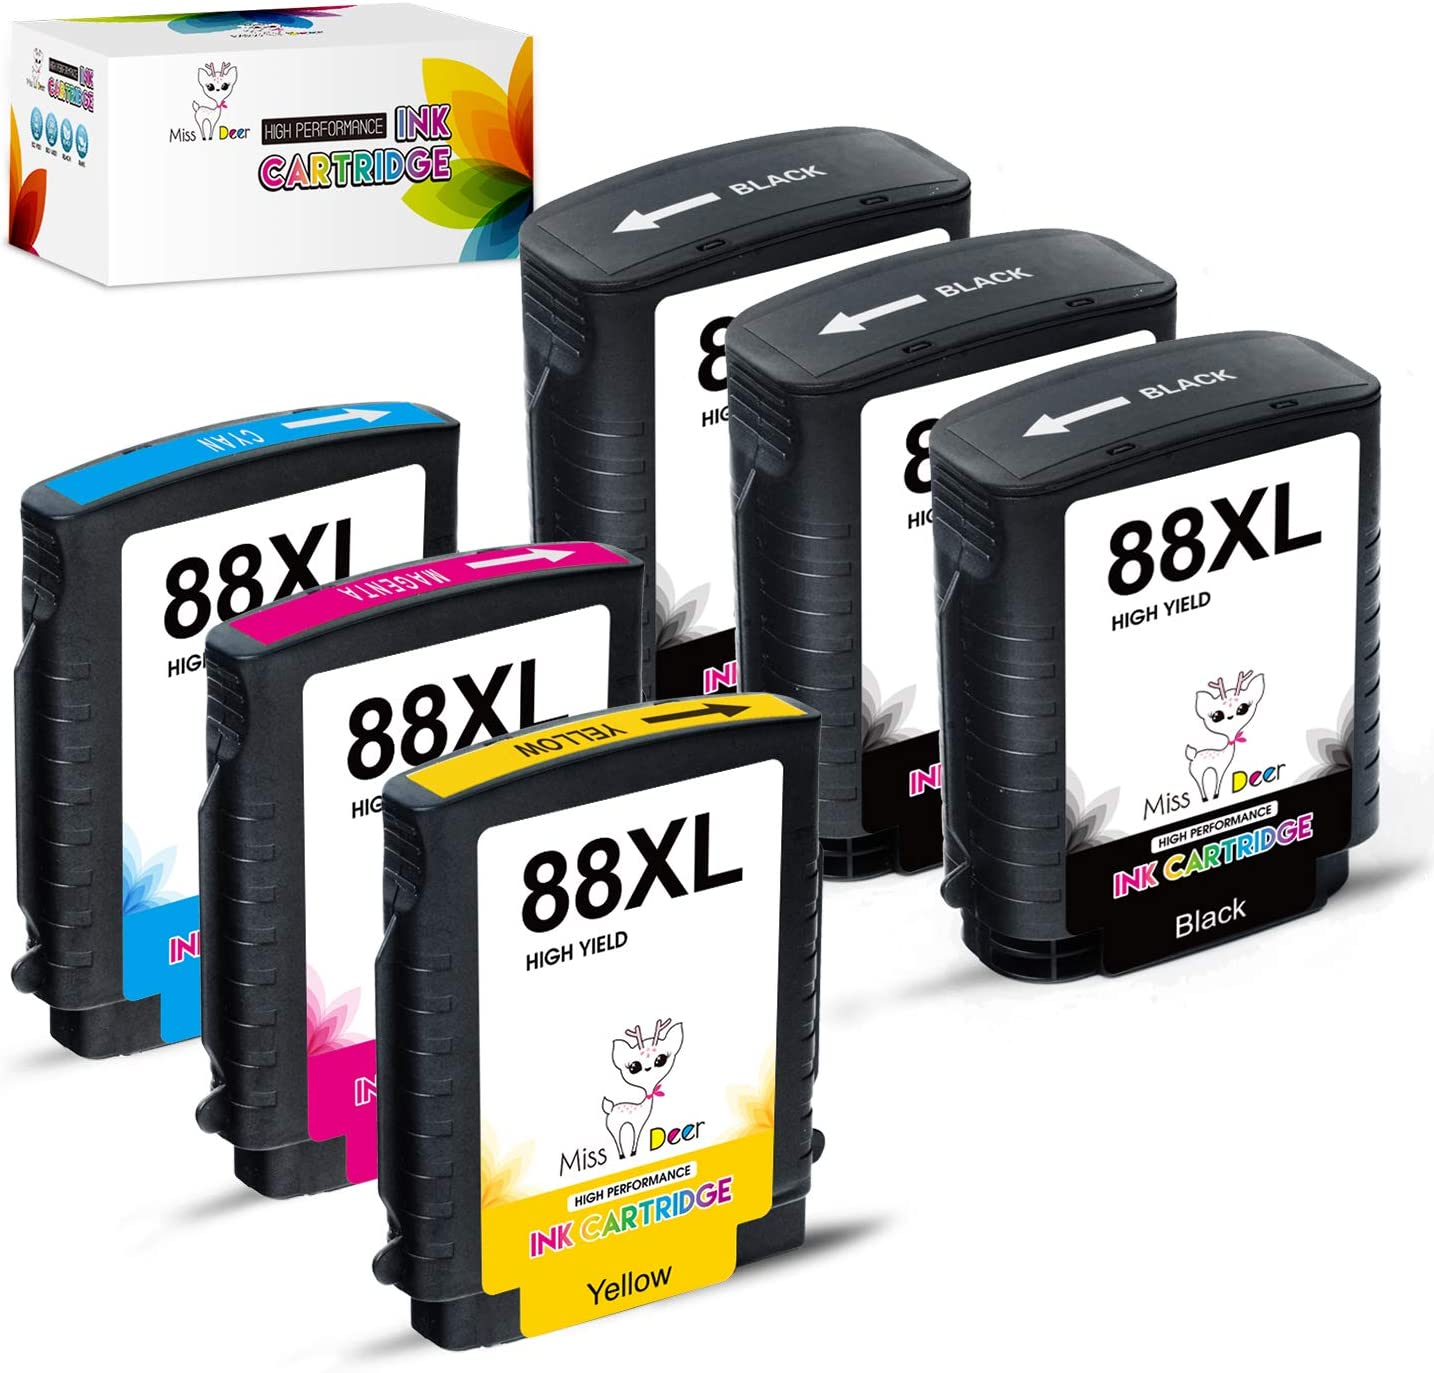 MS Deer Compatible 88XL Ink Cartridges, High Yield Replacement for HP 88 88XL Work with Officejet Pro K5400 K550 K8600 L7480 L7550 L7580 L7590 L7650 L7680 L7750 L7780 (3BK, 1C, 1M, 1Y) 6Pack